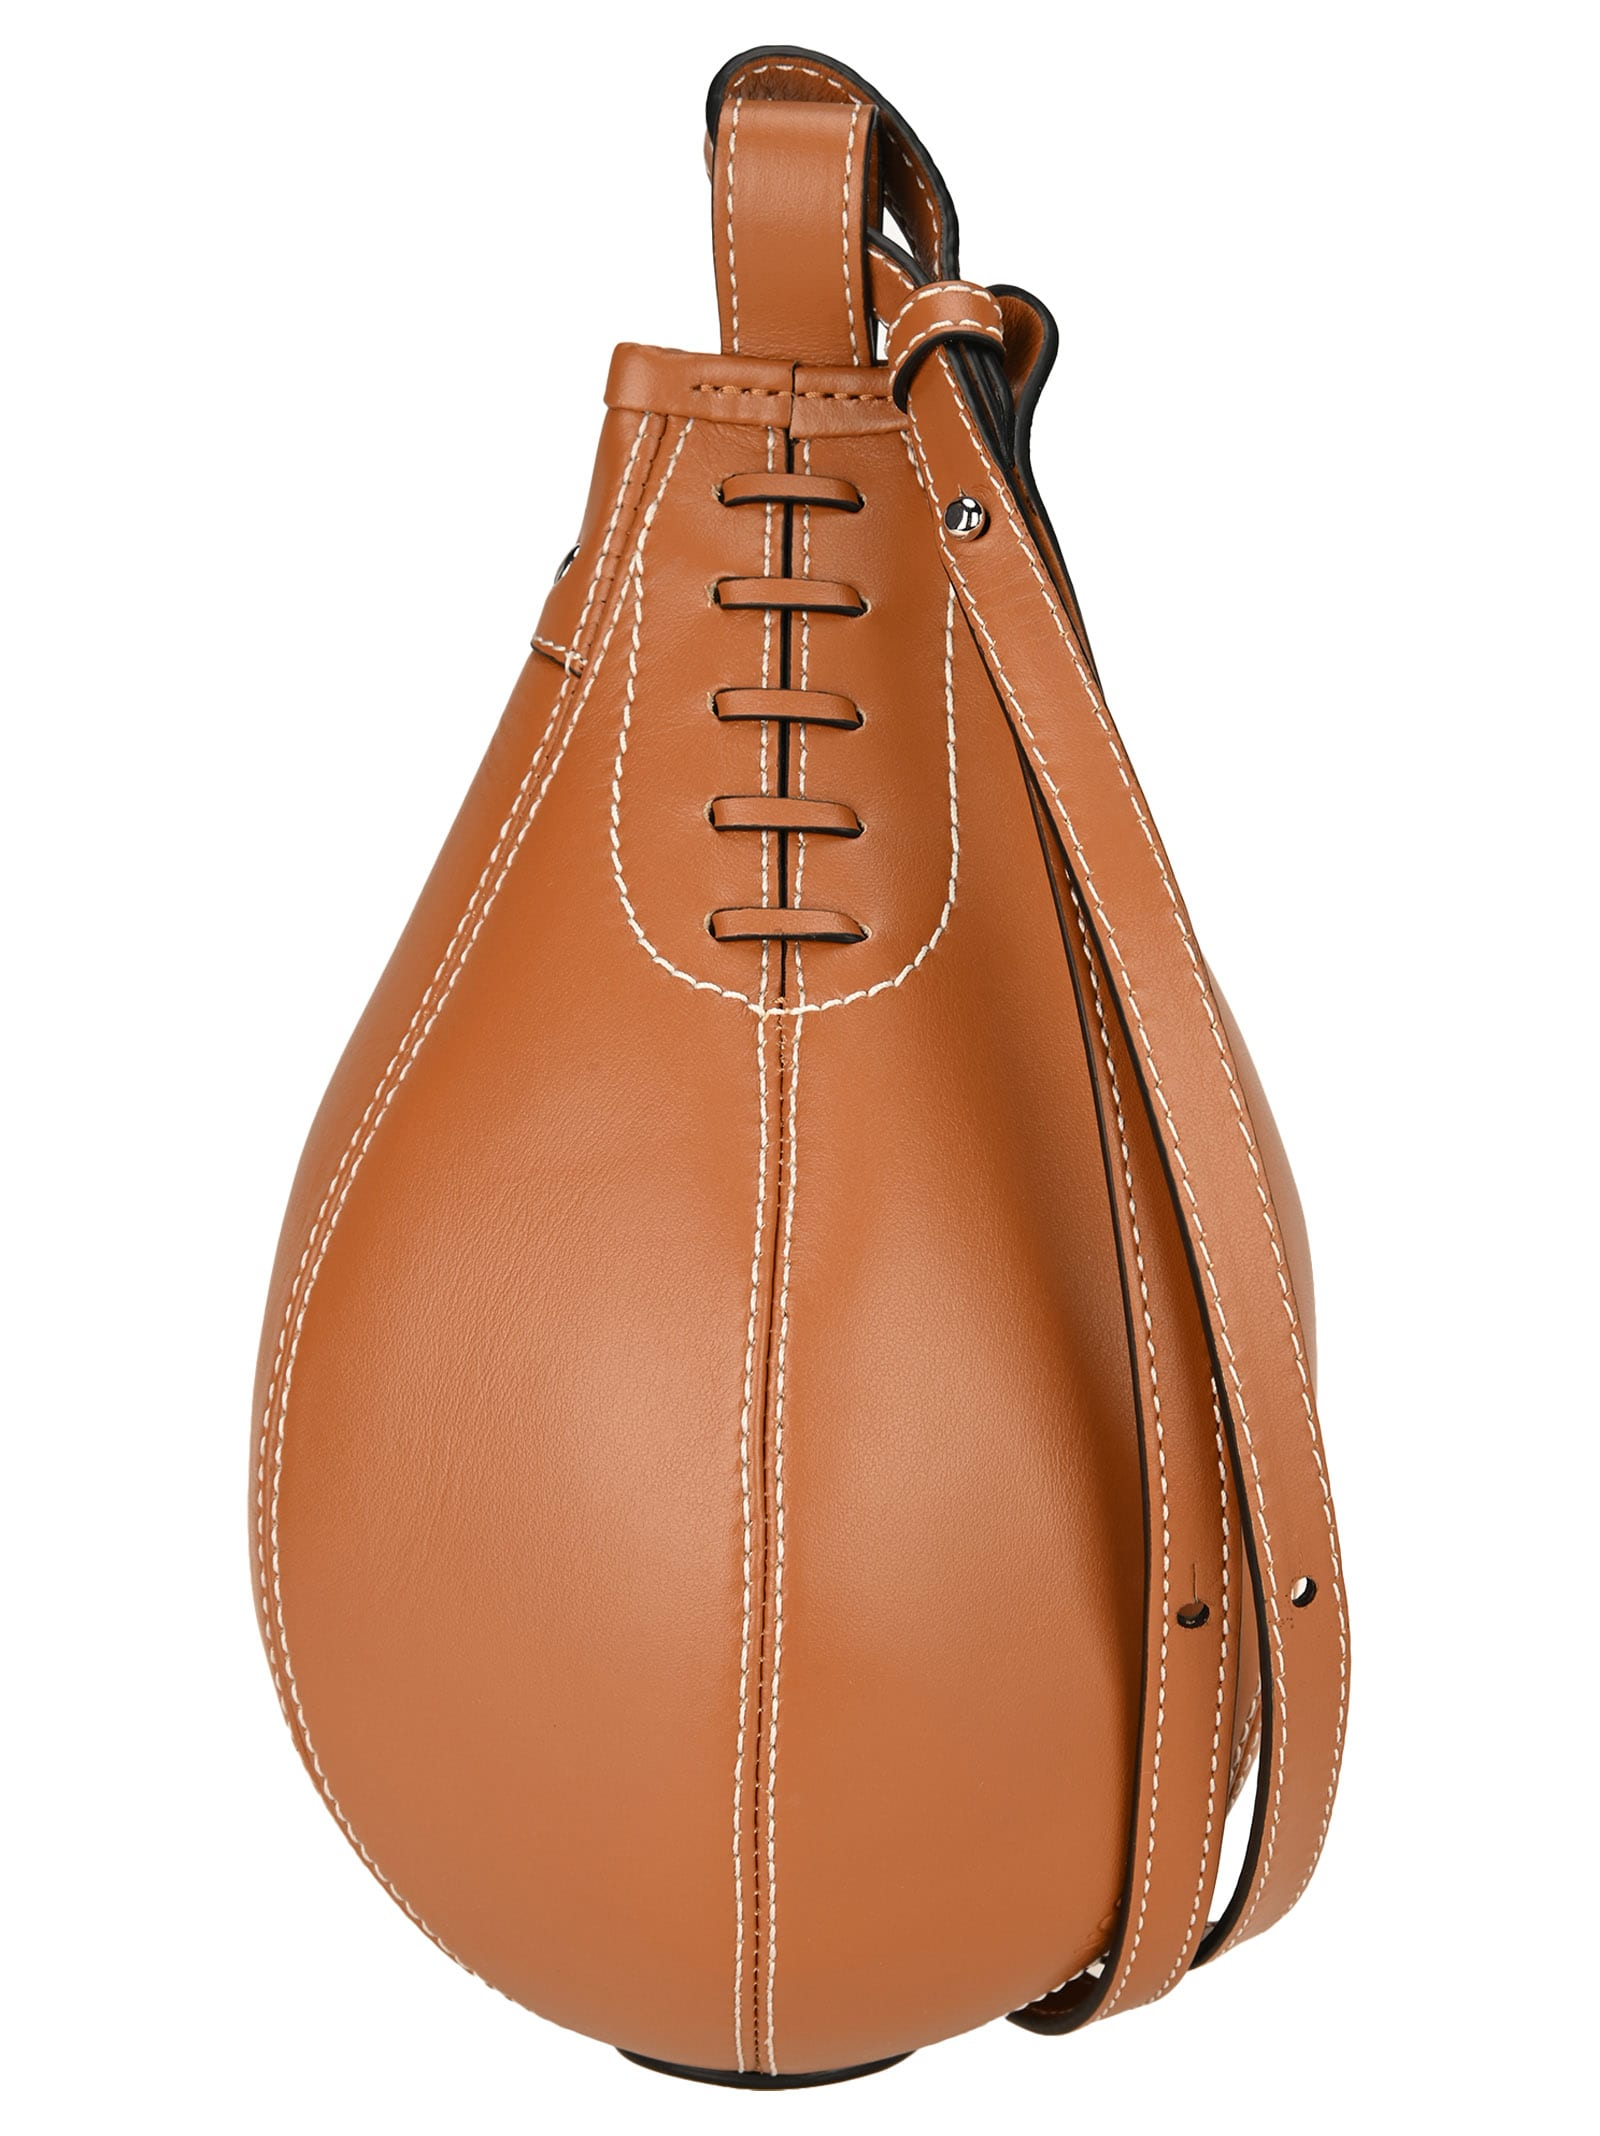 Jw Anderson JW ANDERSON SMALL PUNCH BAG